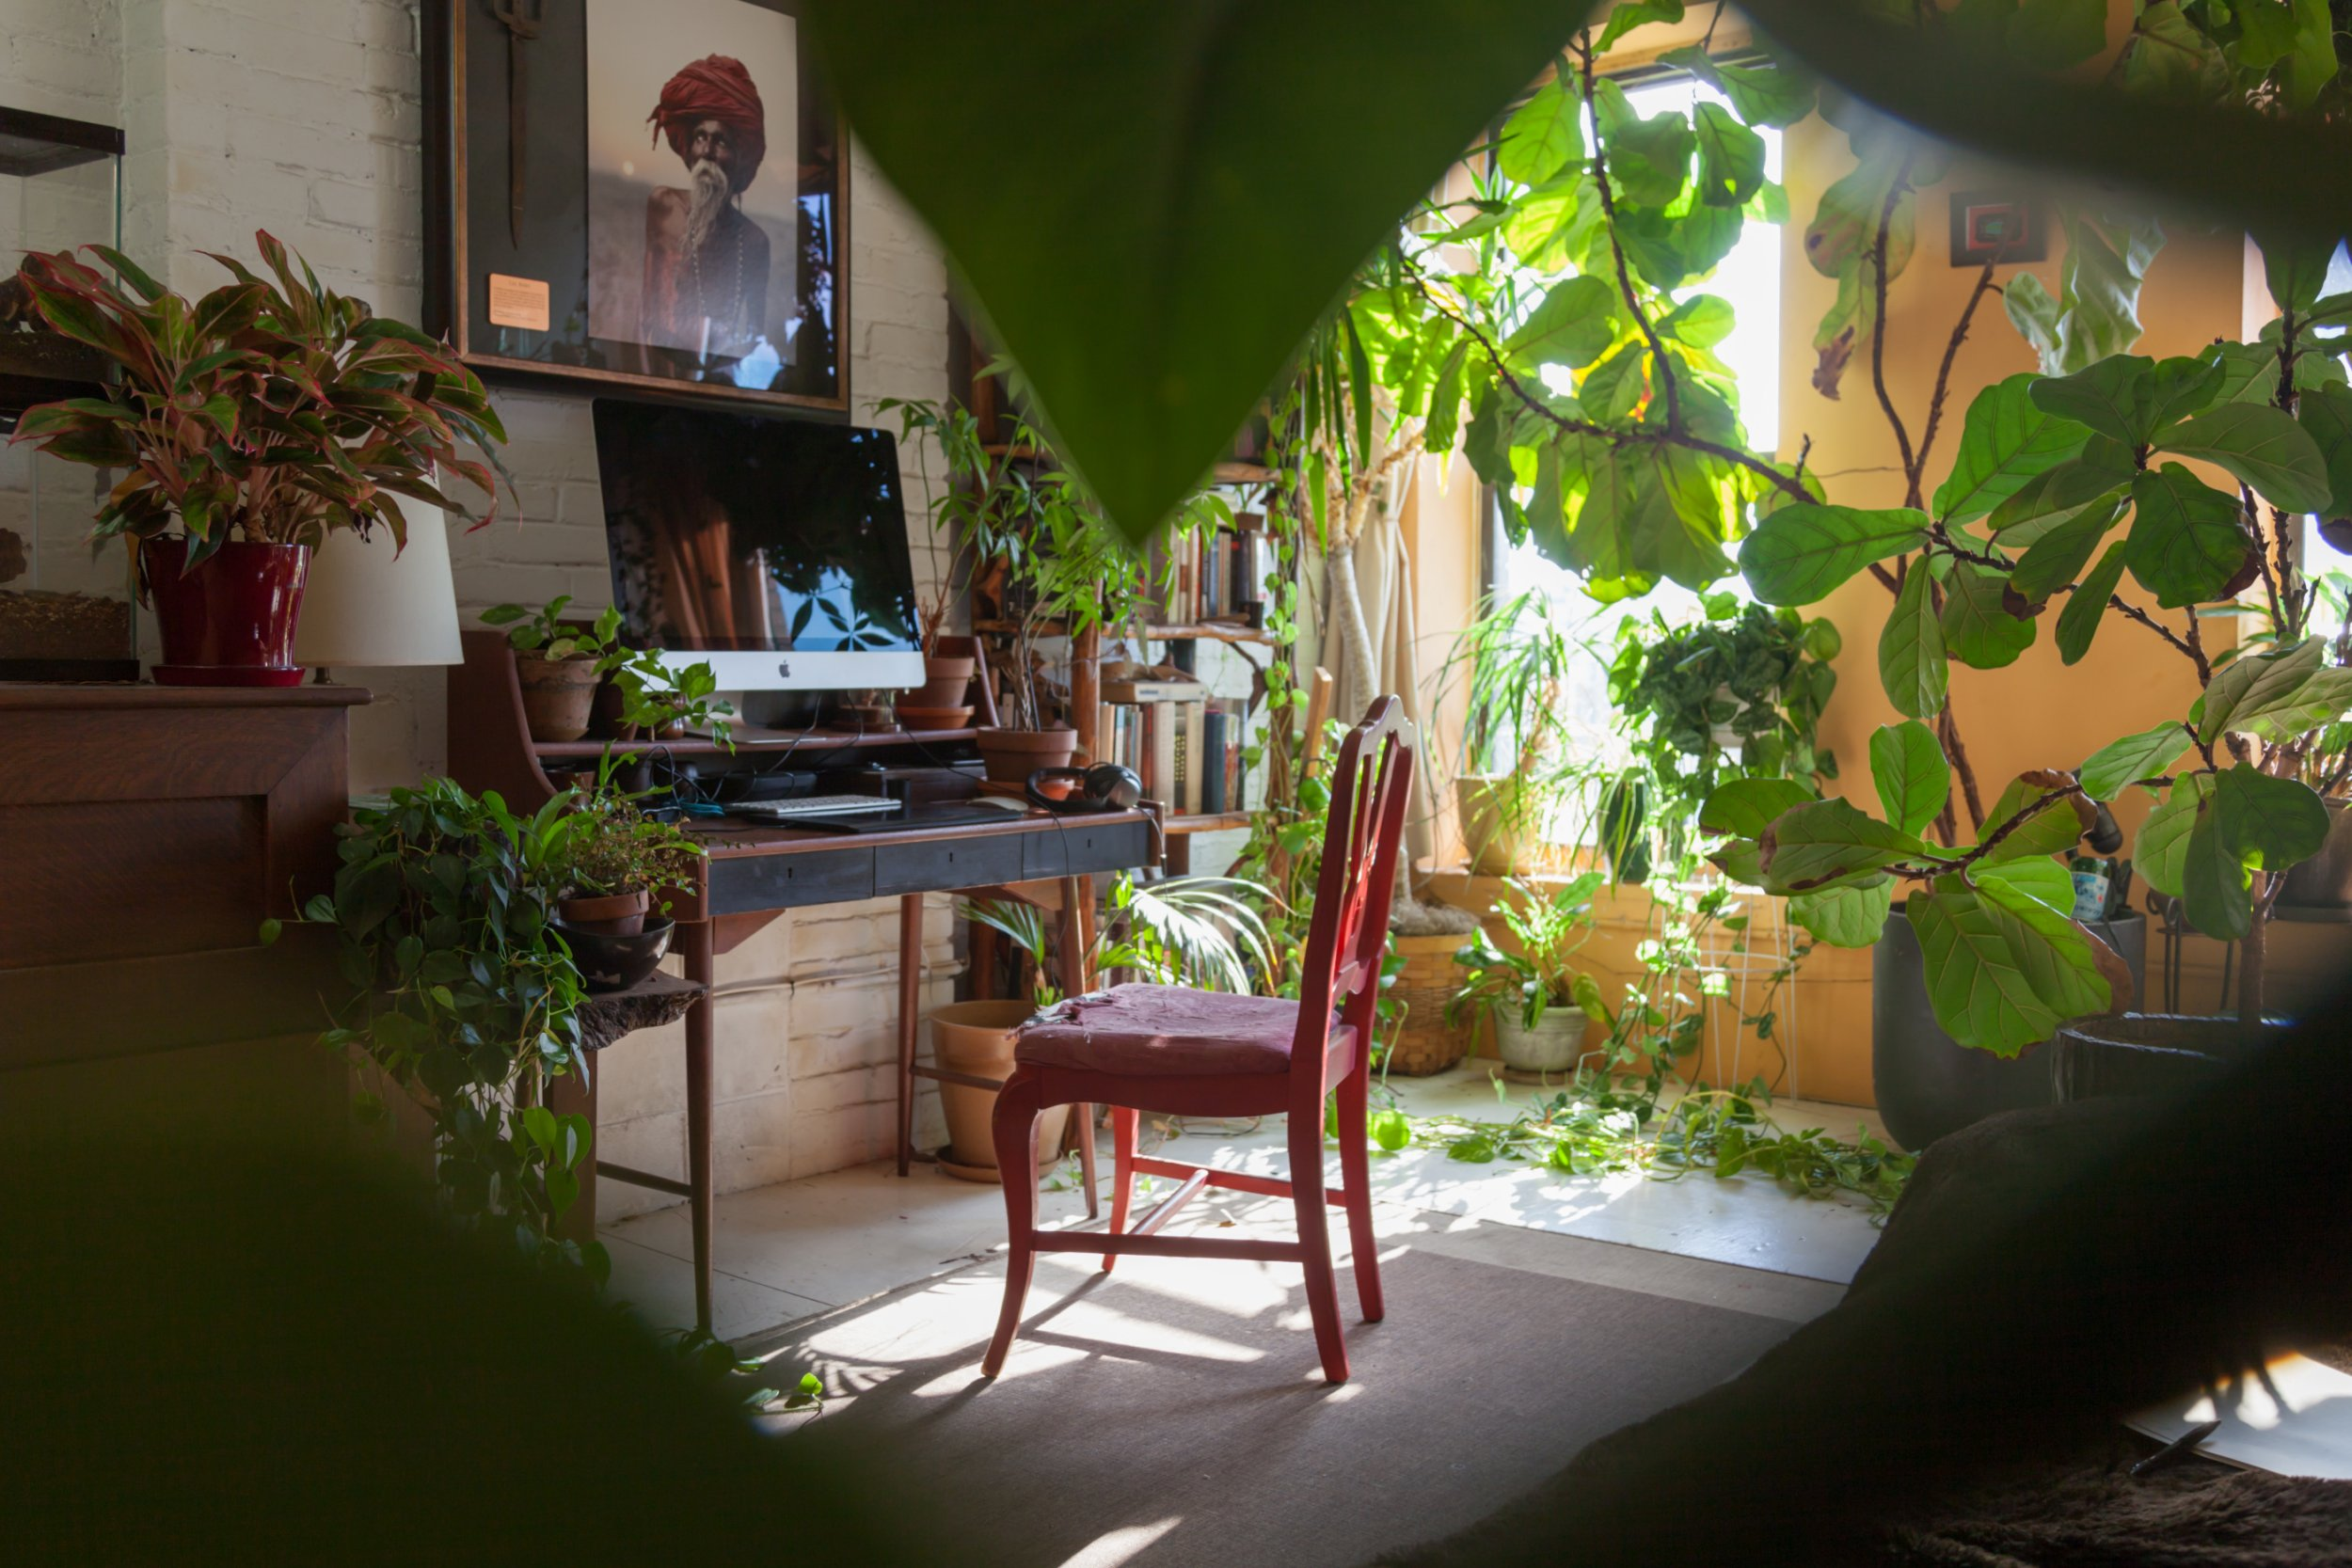 This woman transformed her flat into a mini jungle